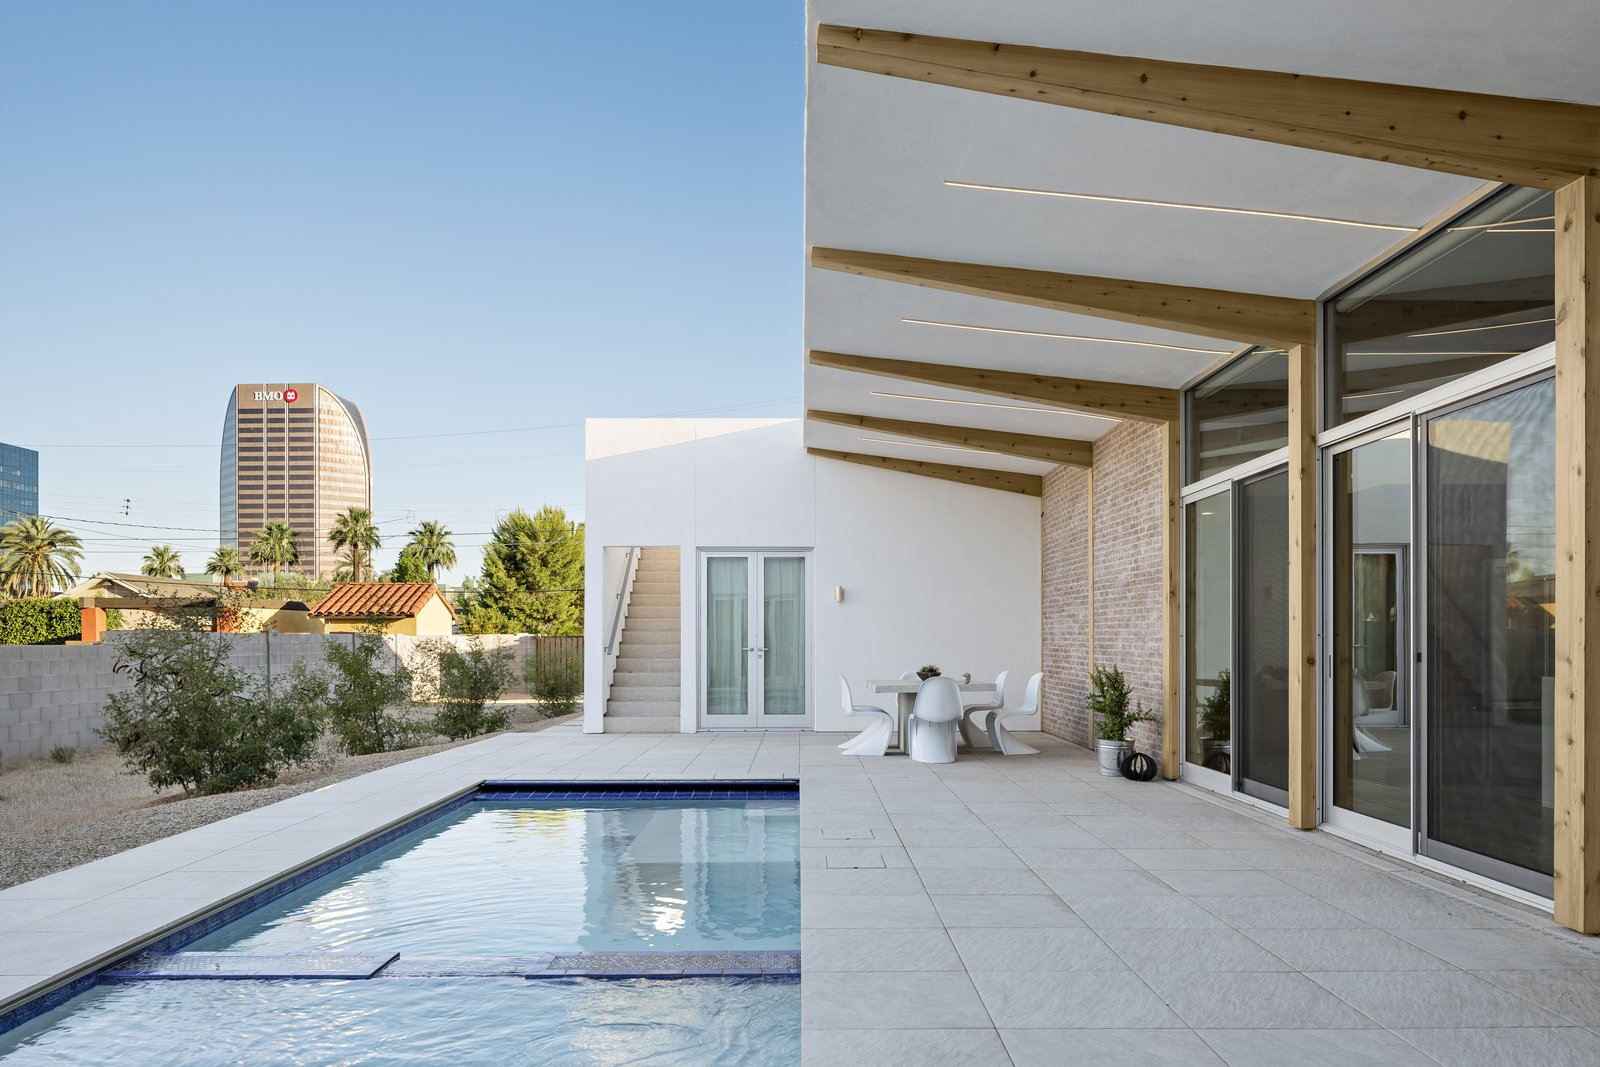 Cantilevered wood beams angle up towards the growing city skyline. On the left, a sloped area captures the monsoon rainfall and the Mulga Acacia trees will grow to the height of the home over time to provide more shade and privacy.